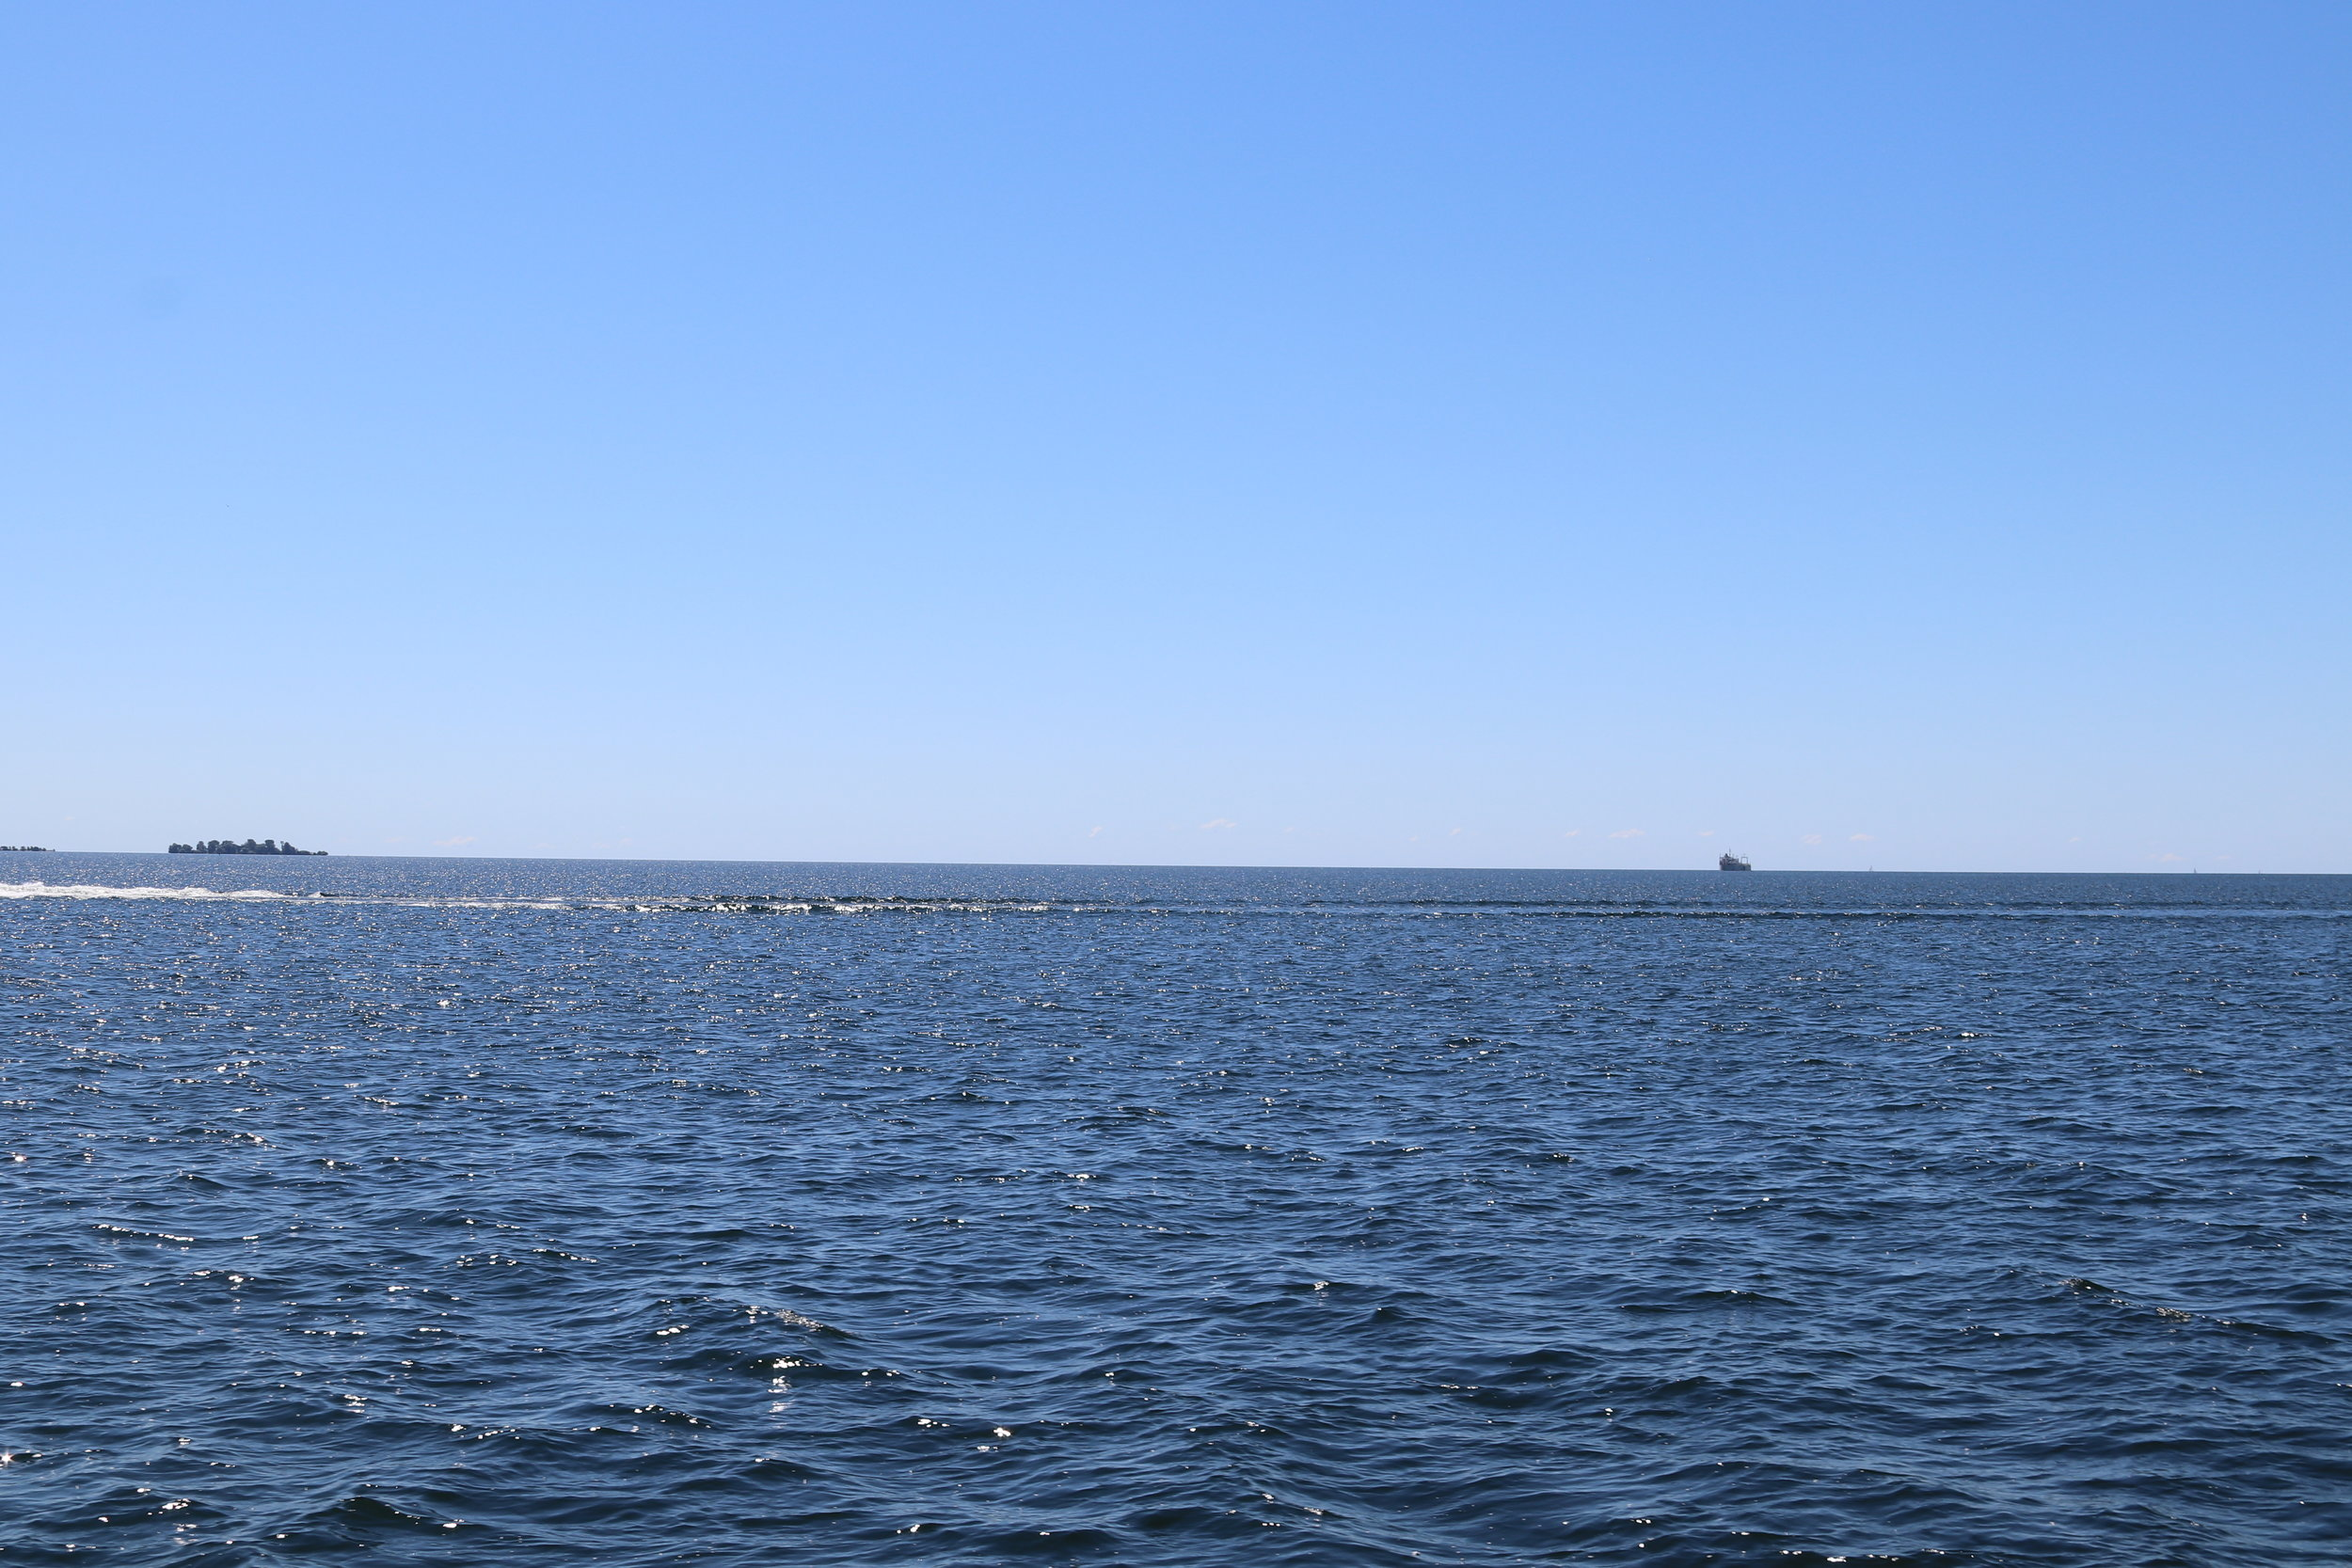 That small dot in the upper right is actually a huge freighter headed out to sea, um, I mean into Lake Ontario.